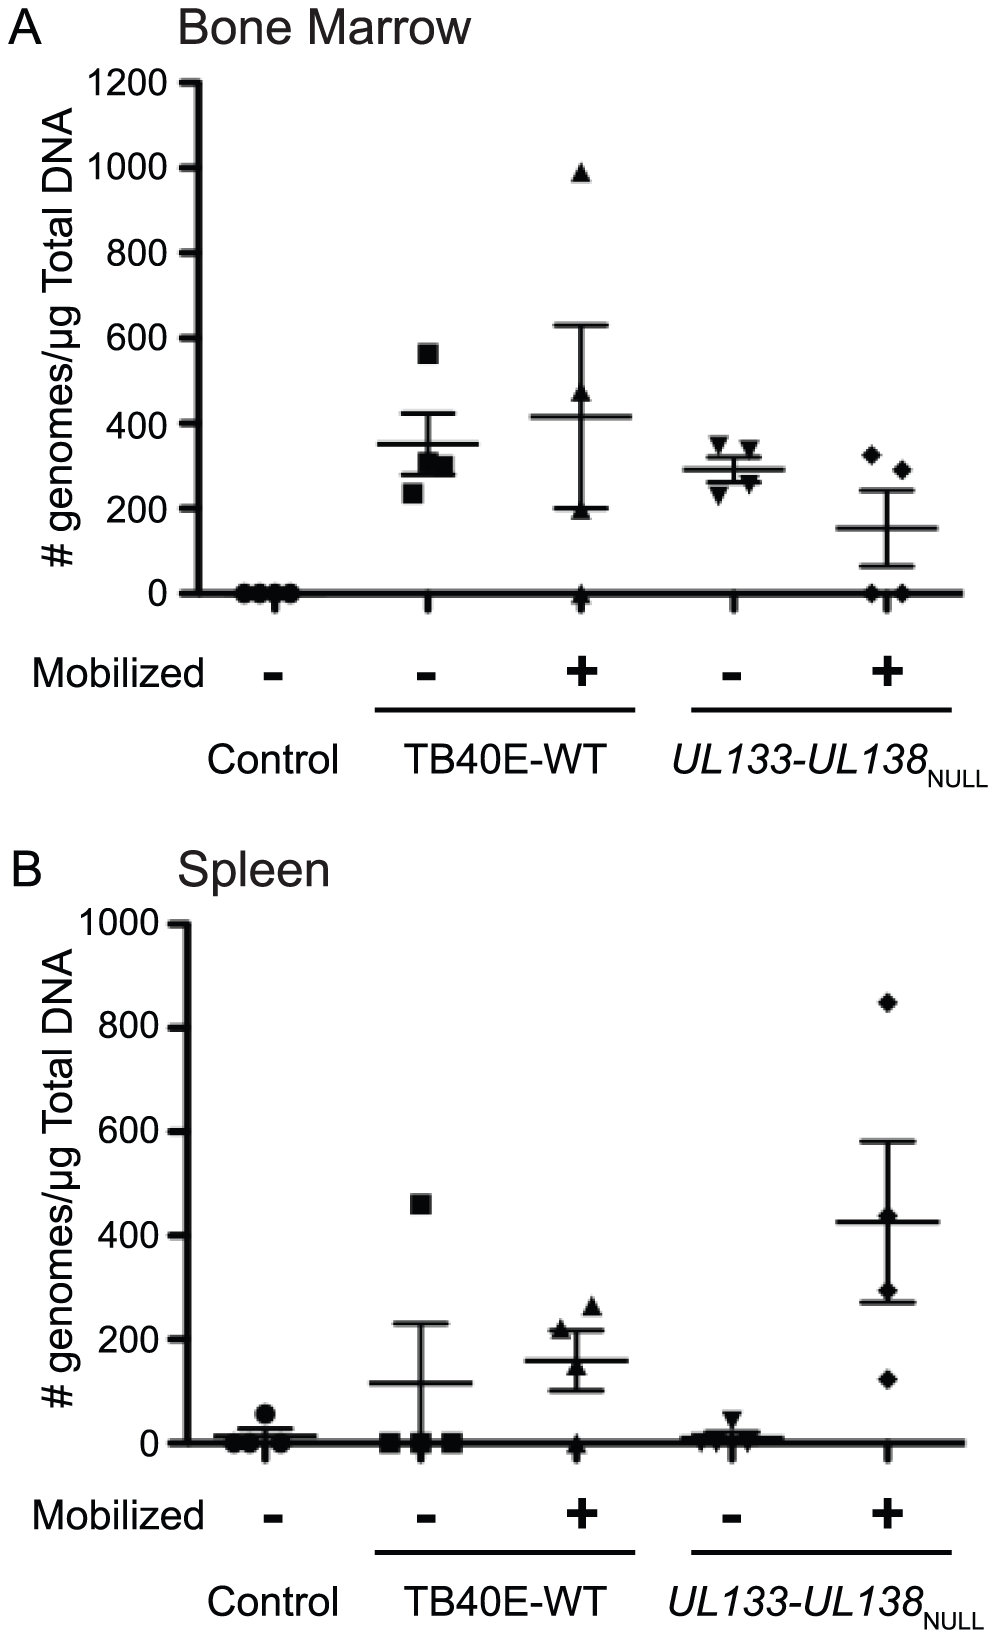 Analysis of <i>UL133-UL138</i><sub>NULL</sub> infection in humanized mice.